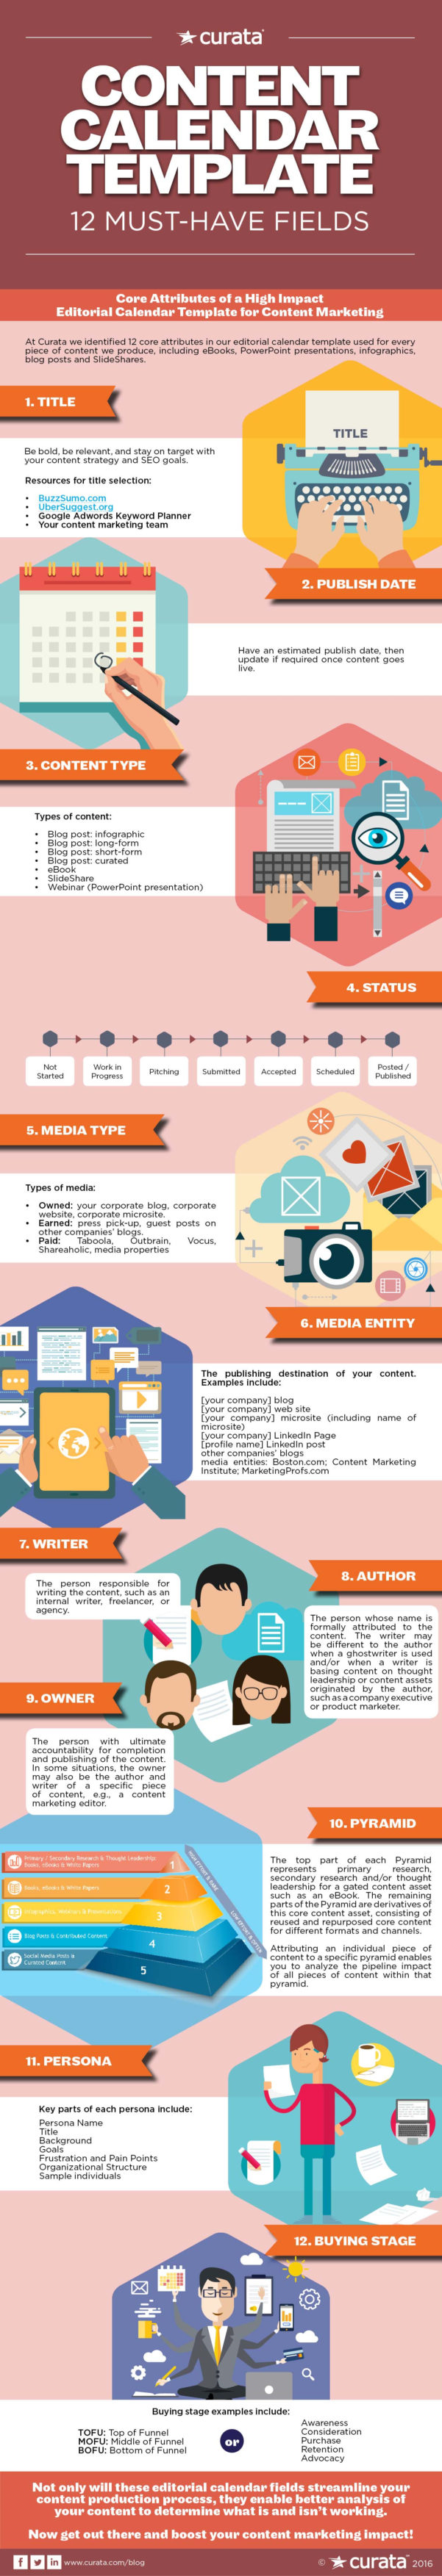 Content Marketing Calendar Template: 12 Must Have Fields [Infographic] Within Content Marketing Calendar Template